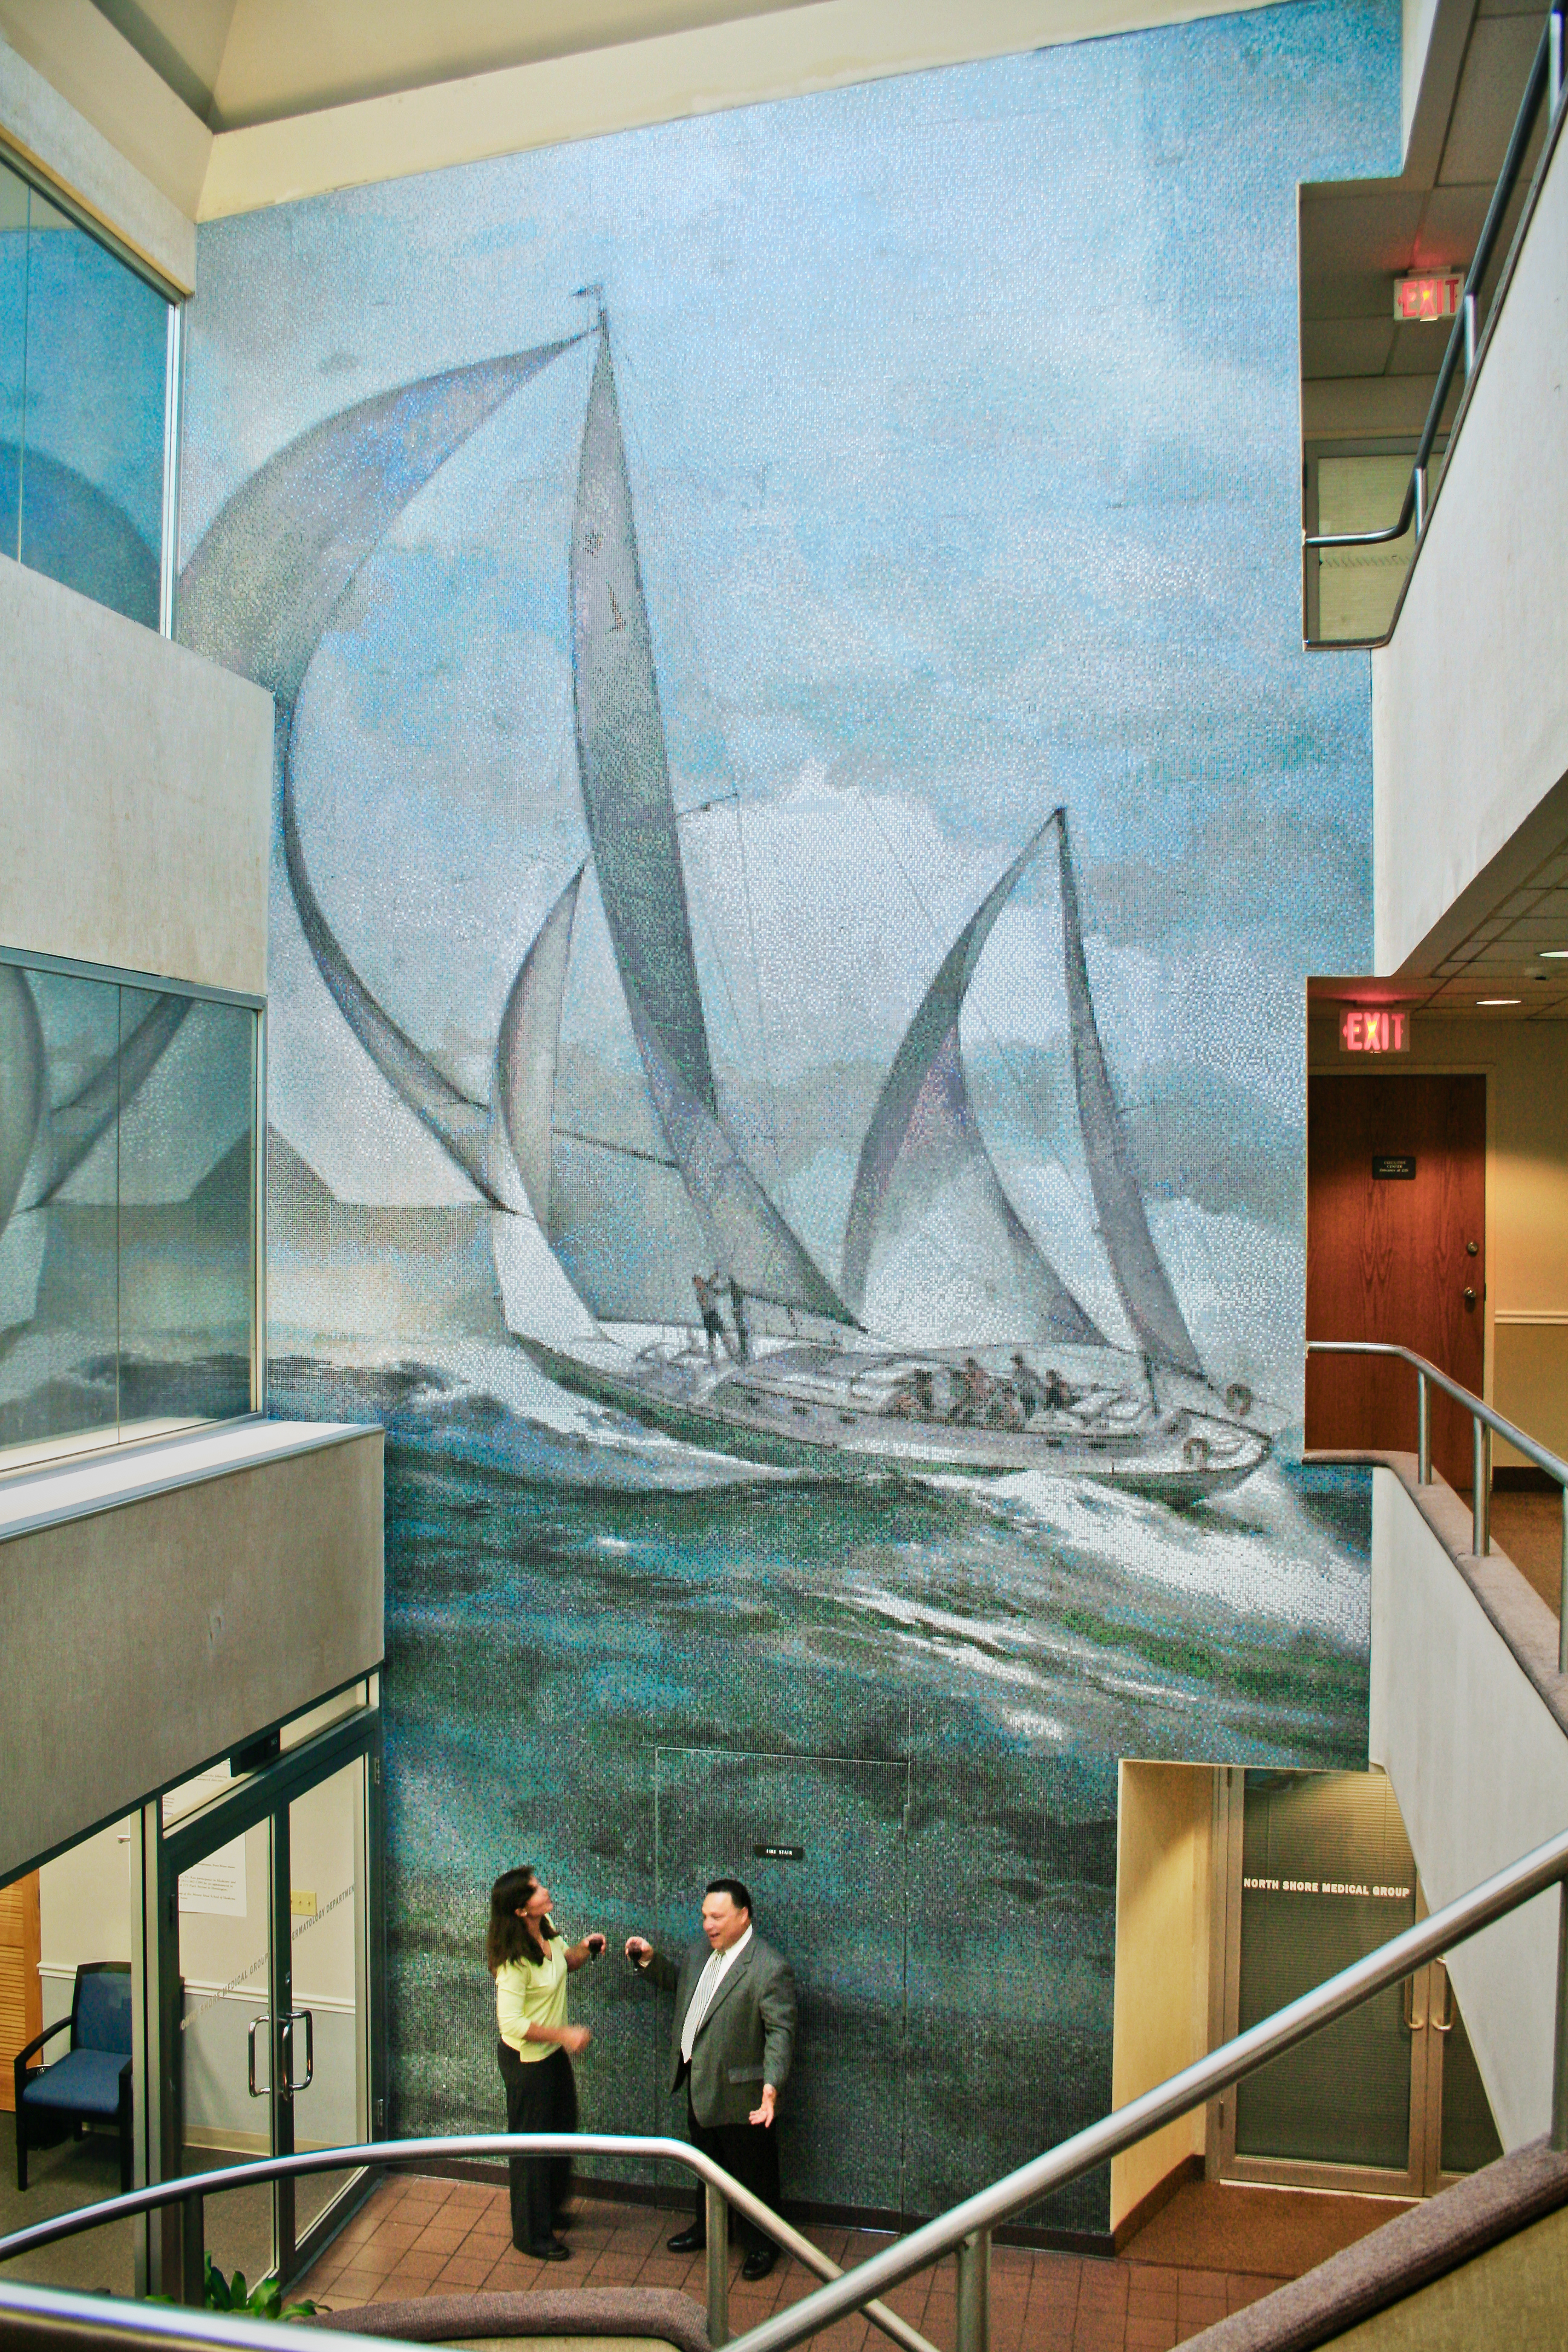 Corridor Winds Custom Sailboat Mosaic Office Atrium Mural | Artaic